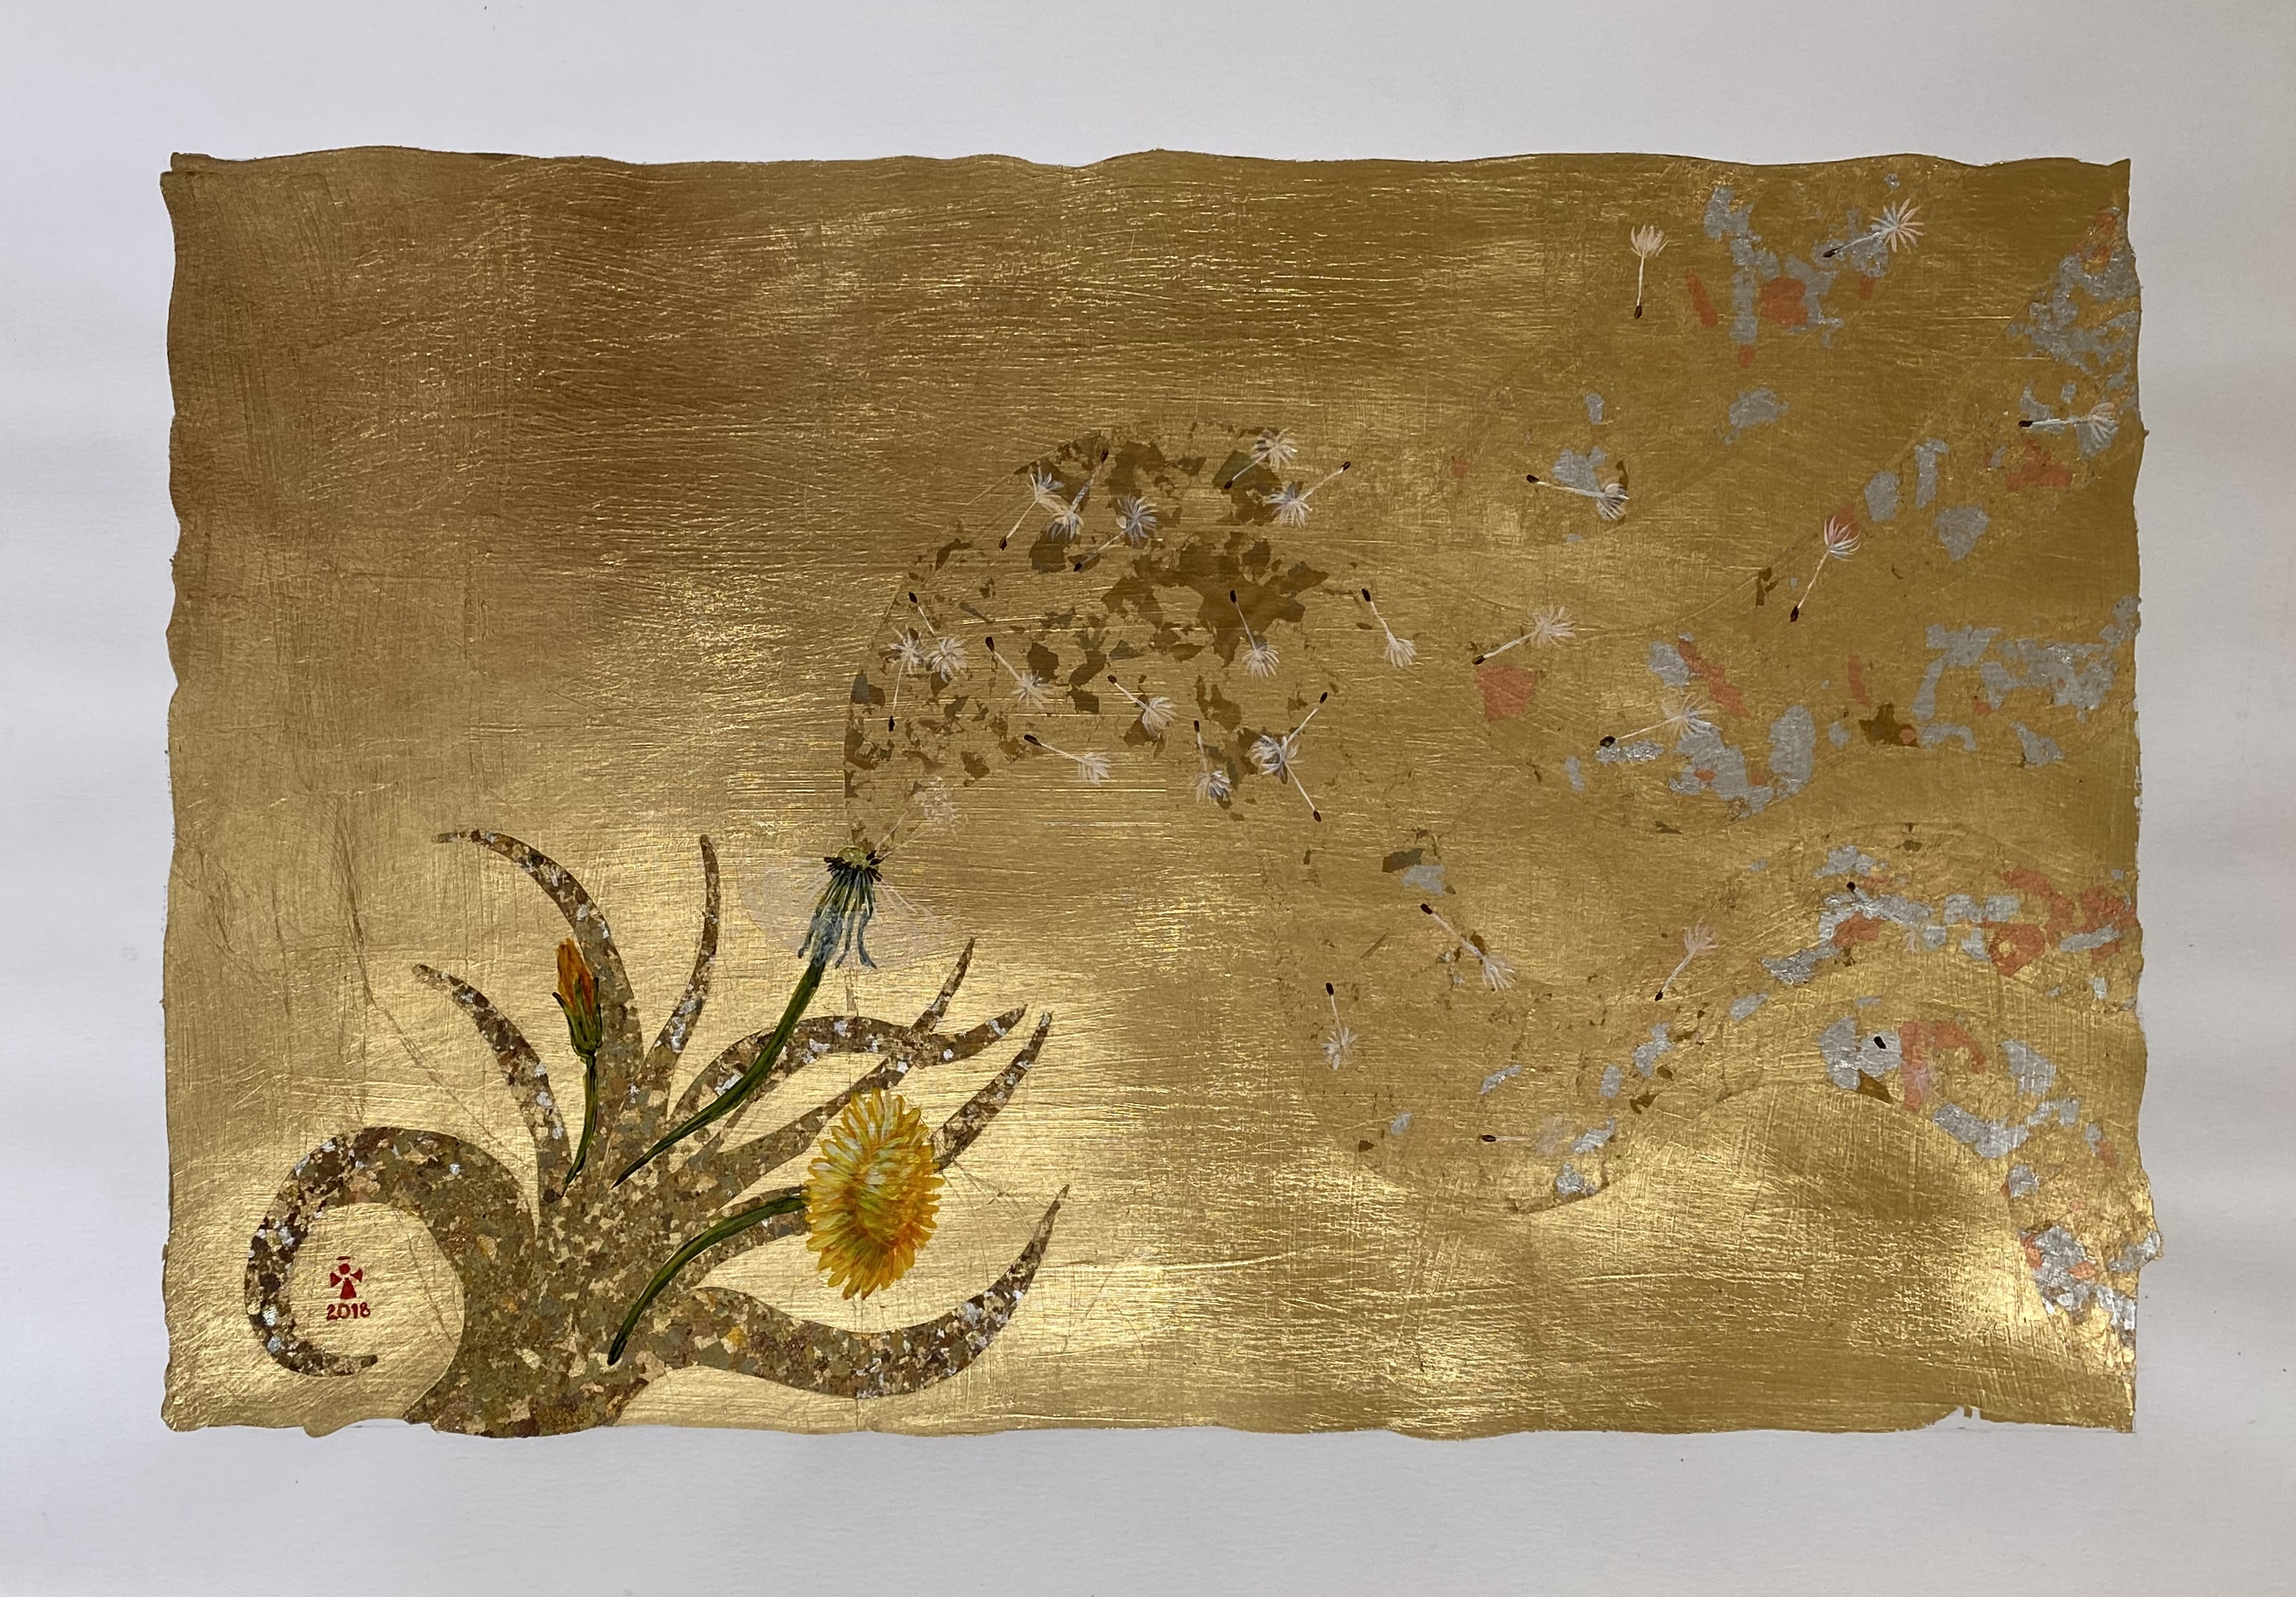 Dandelion in Wind - Angeles Salinas - 19'' x 14'' - Mixed Media on Paper